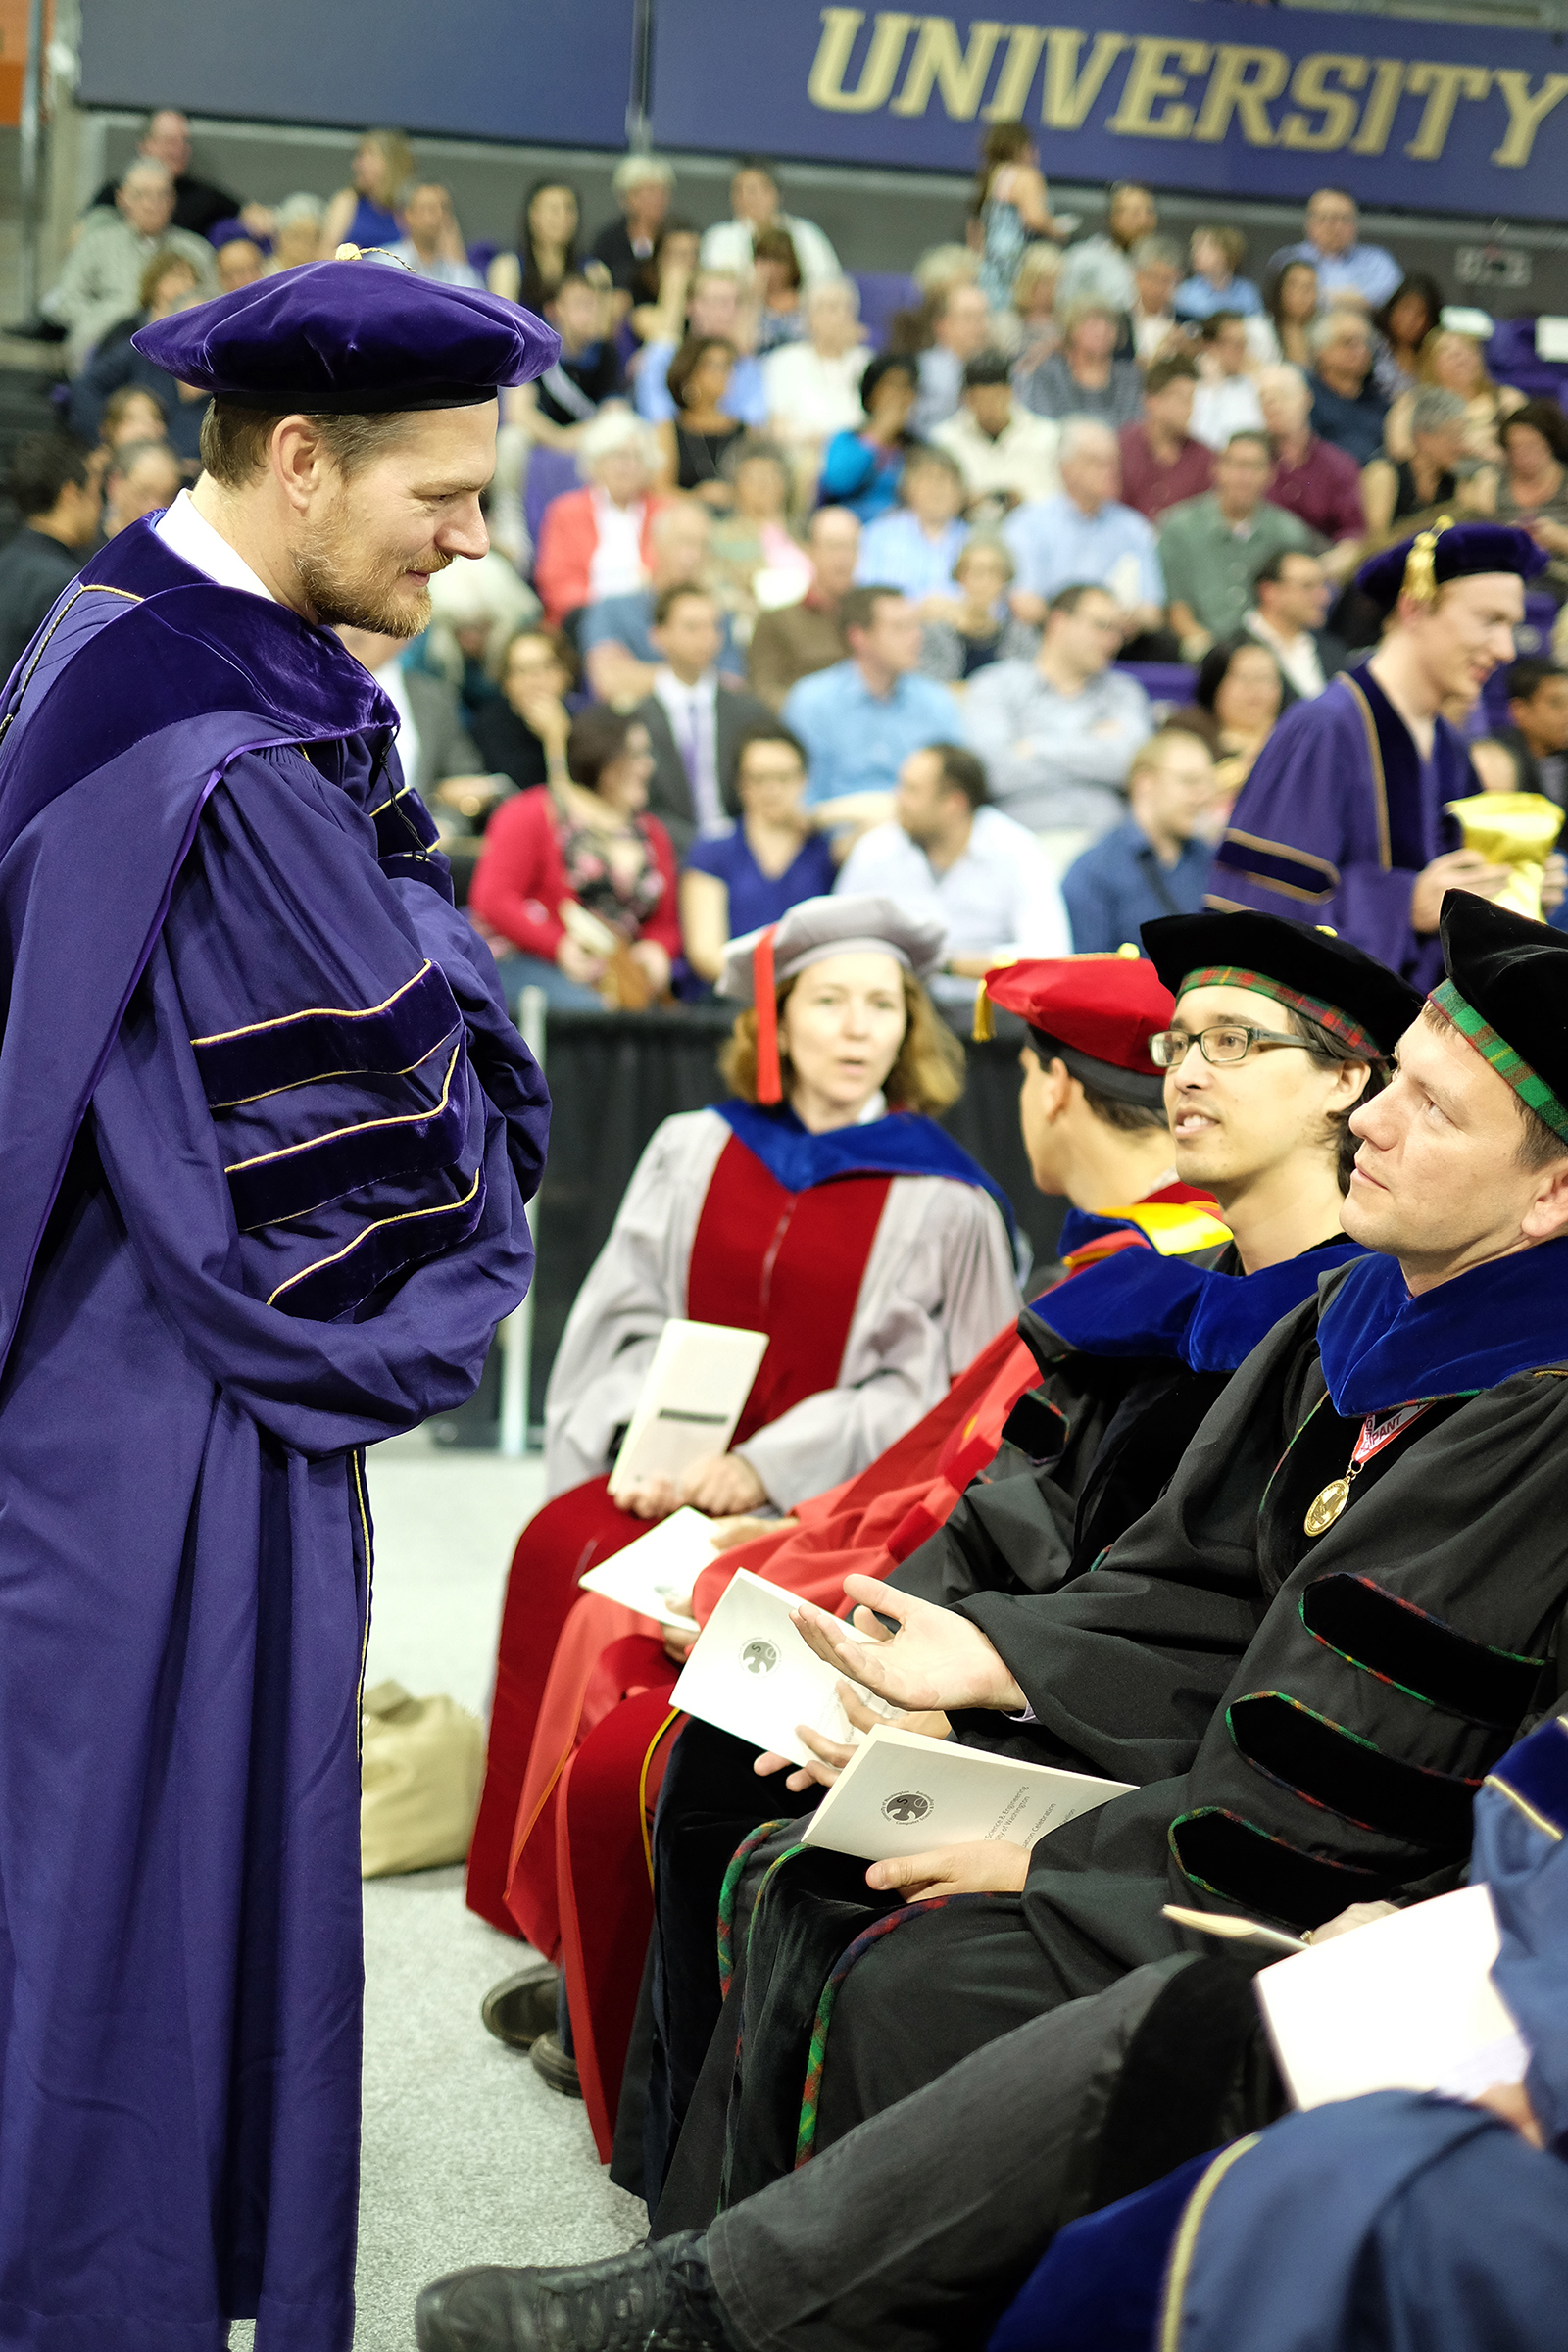 Faculty, graduates and guests at the arena